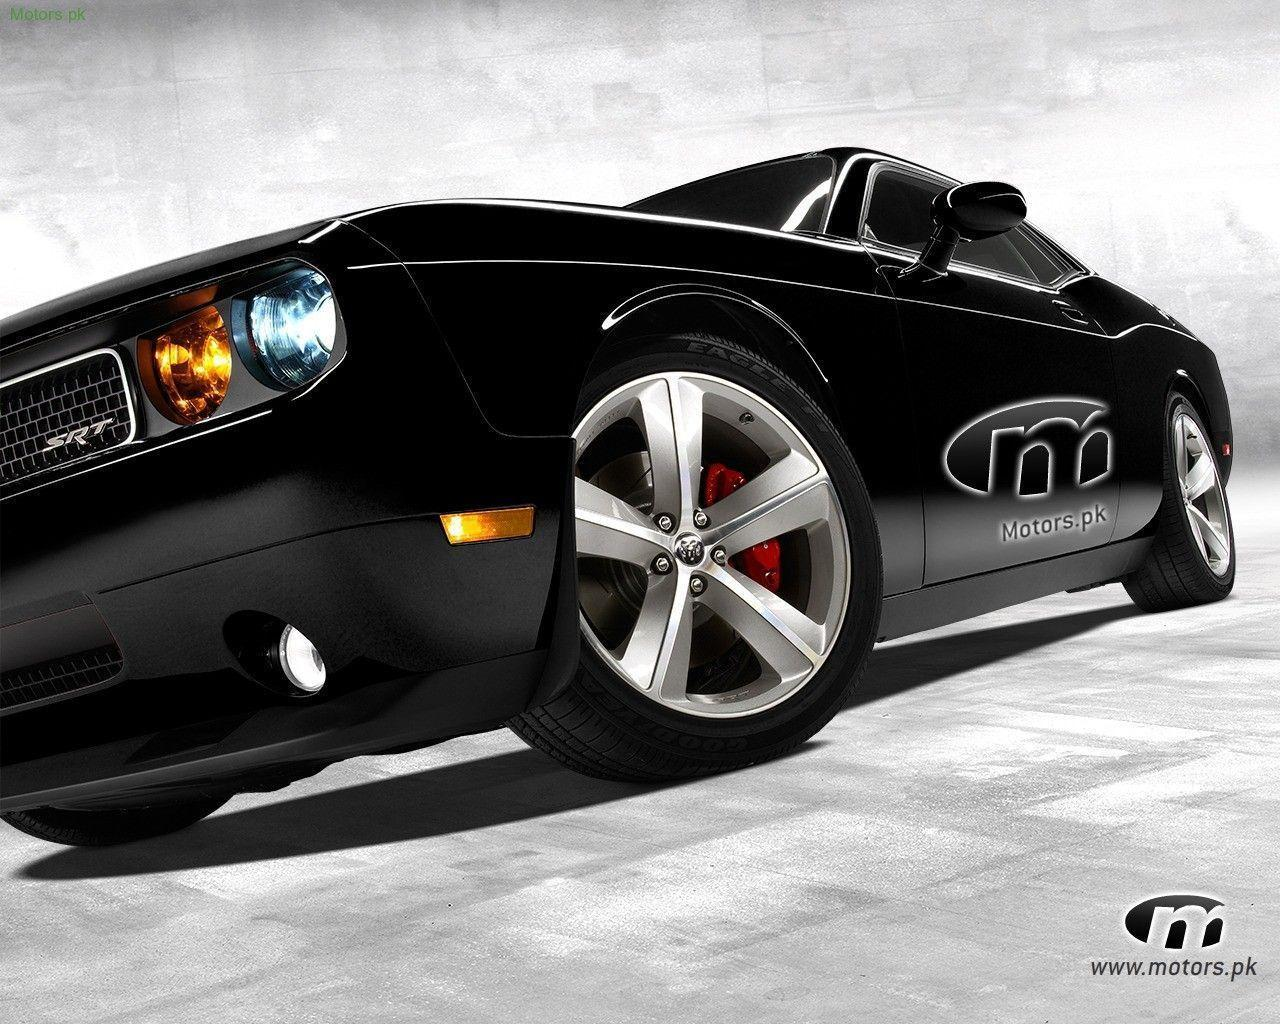 Inspiring Charm Hd Wallpapers Ford Muscle Car Wallpaper ...